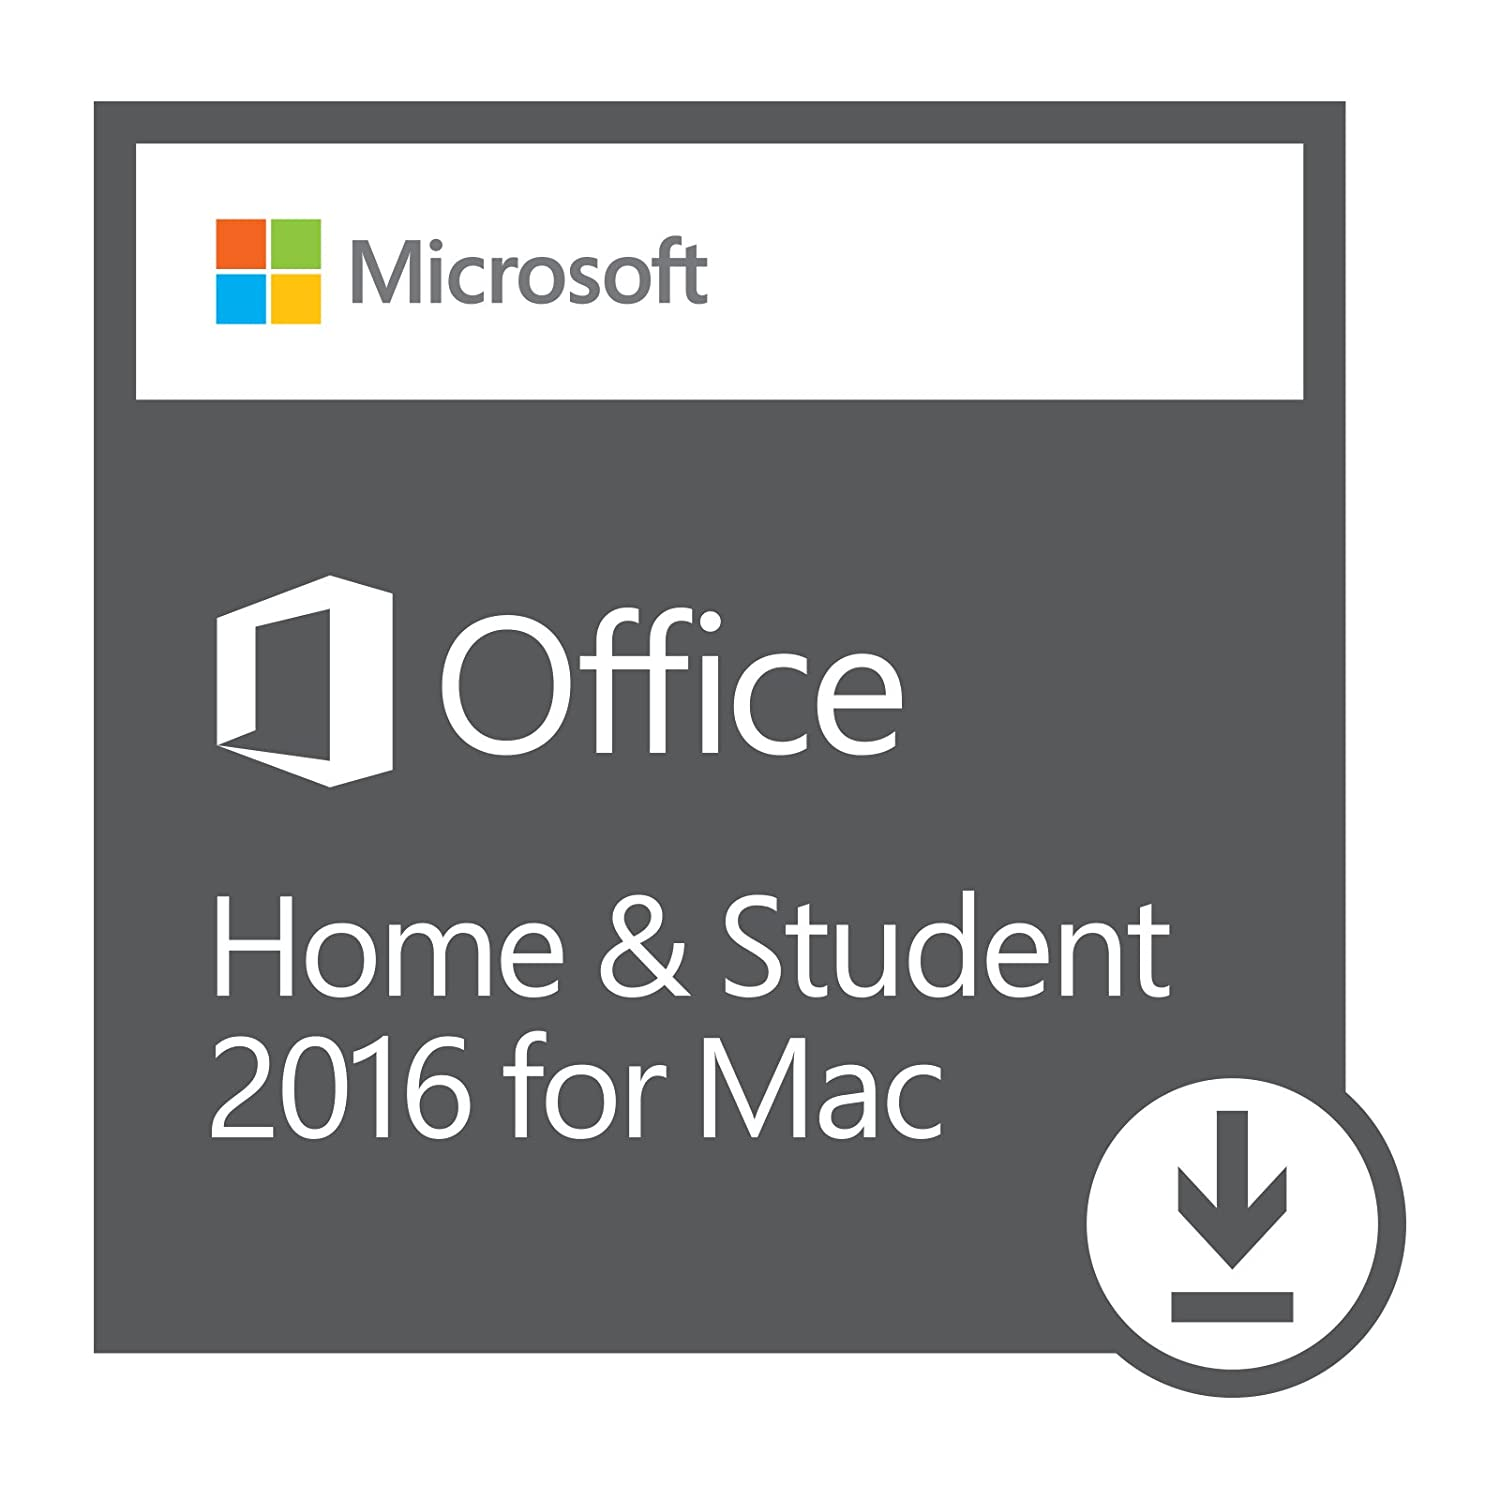 amazoncom microsoft office home student 2016 for mac 1 user mac download software amazoncom stills office